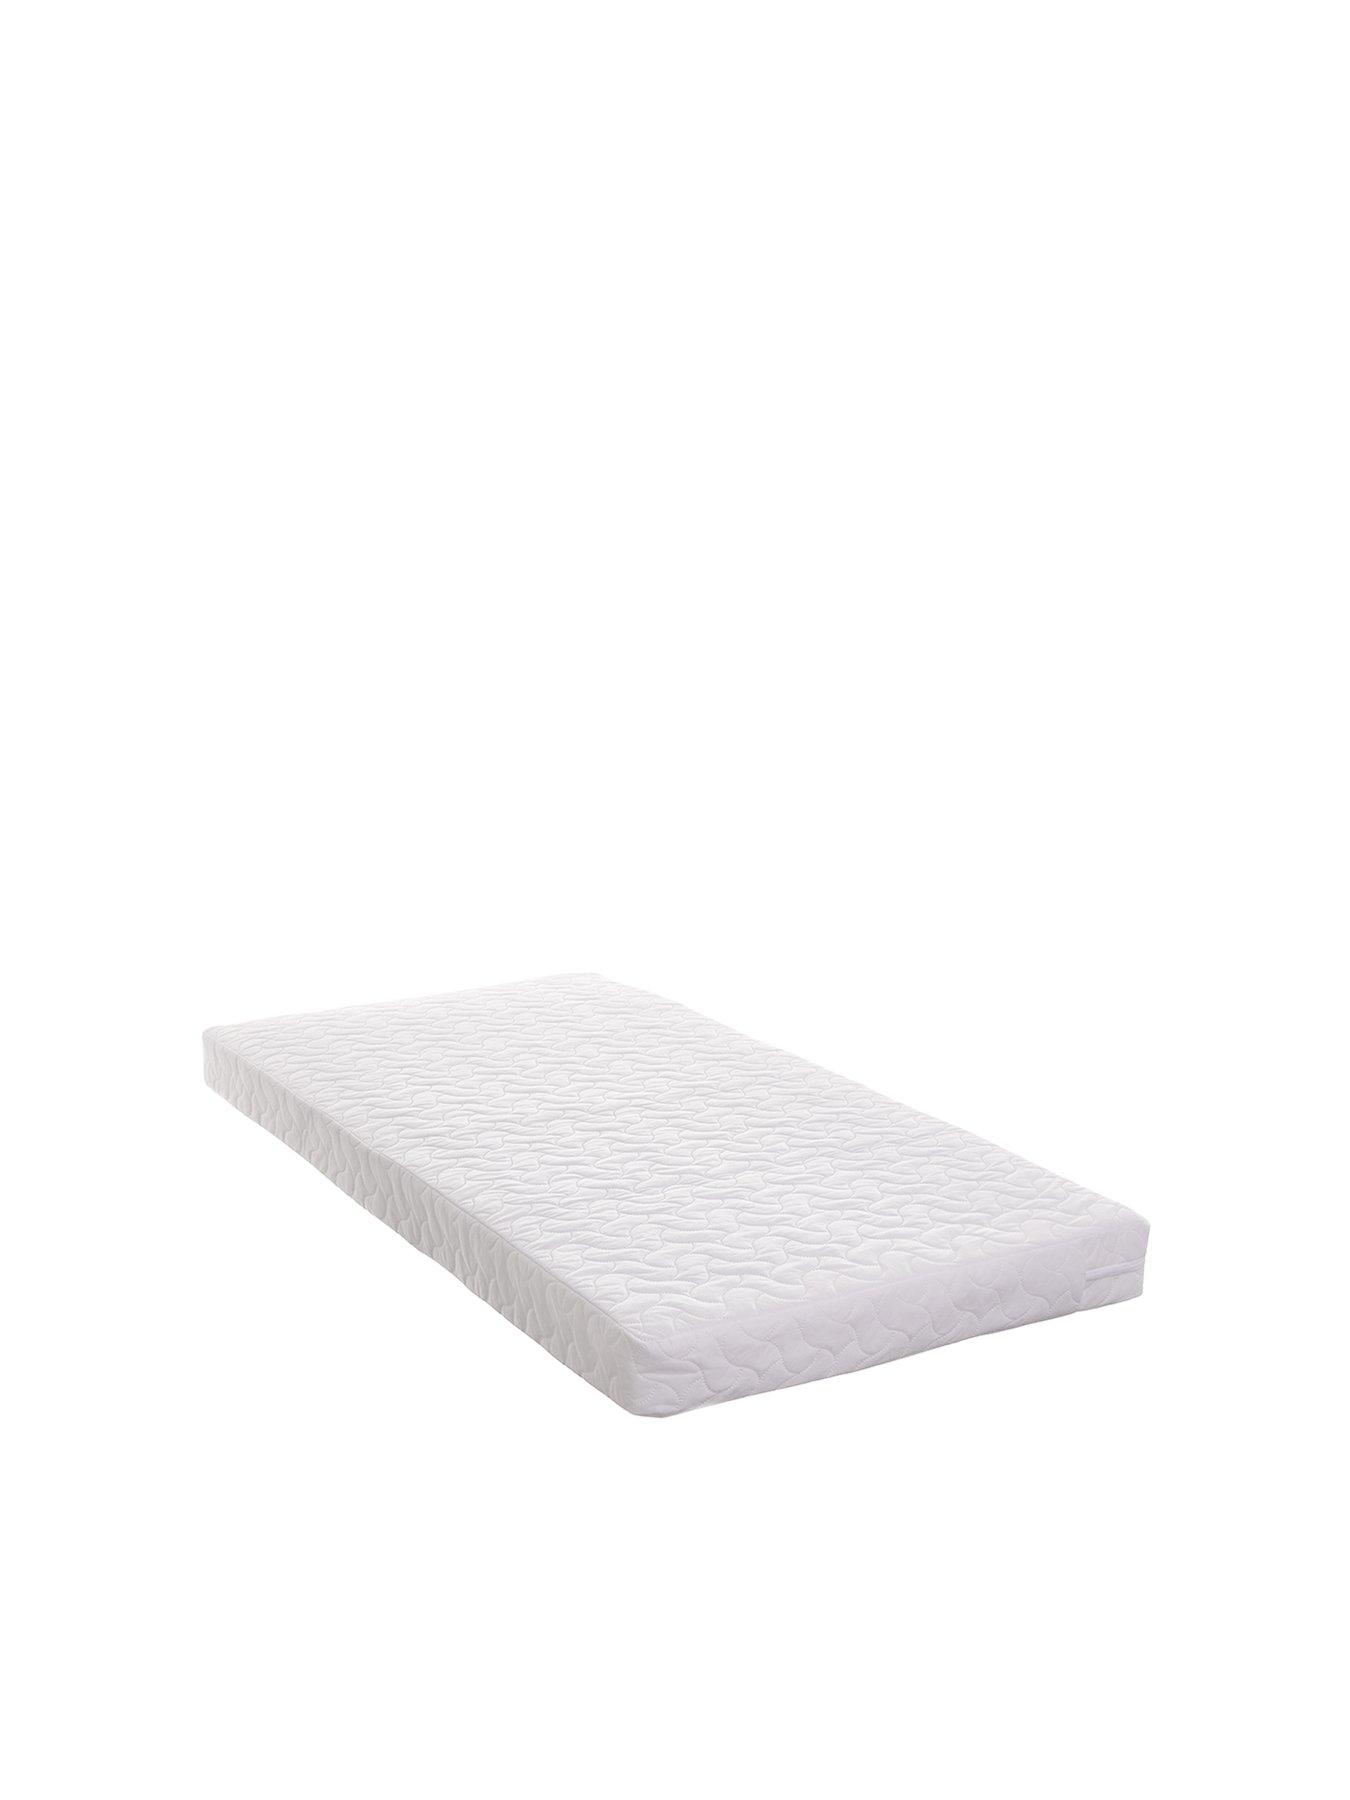 Cradle Baby Mattress cot Crib Size 89 x 43 x 4 cm Breathable Quilted and Waterproof Foam Mattress for cot Nursery Crib